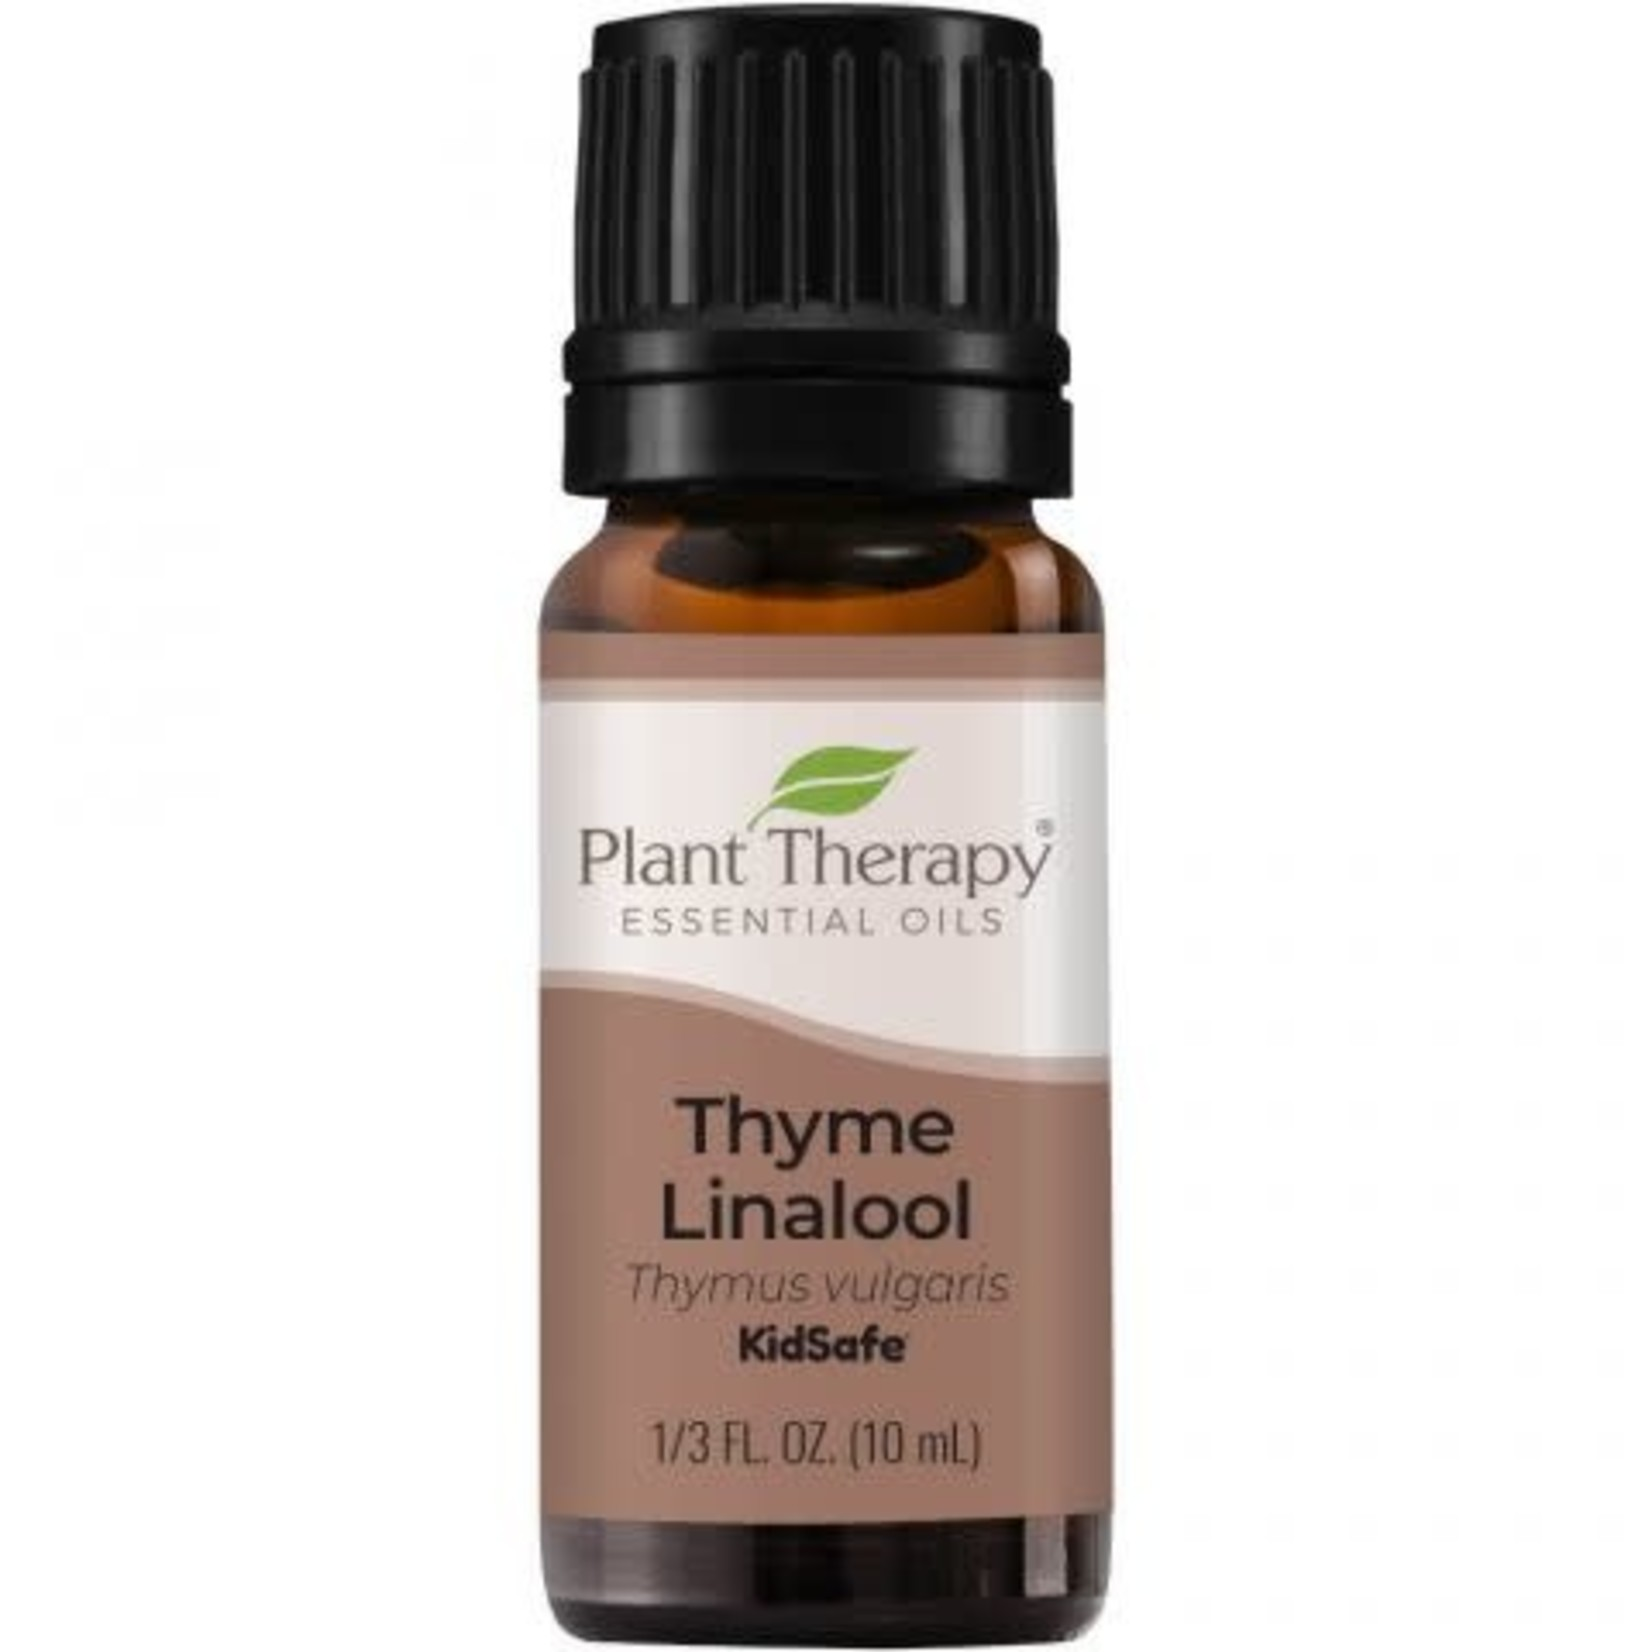 Plant Therapy PT Thyme Linalool Essential Oil 10ml